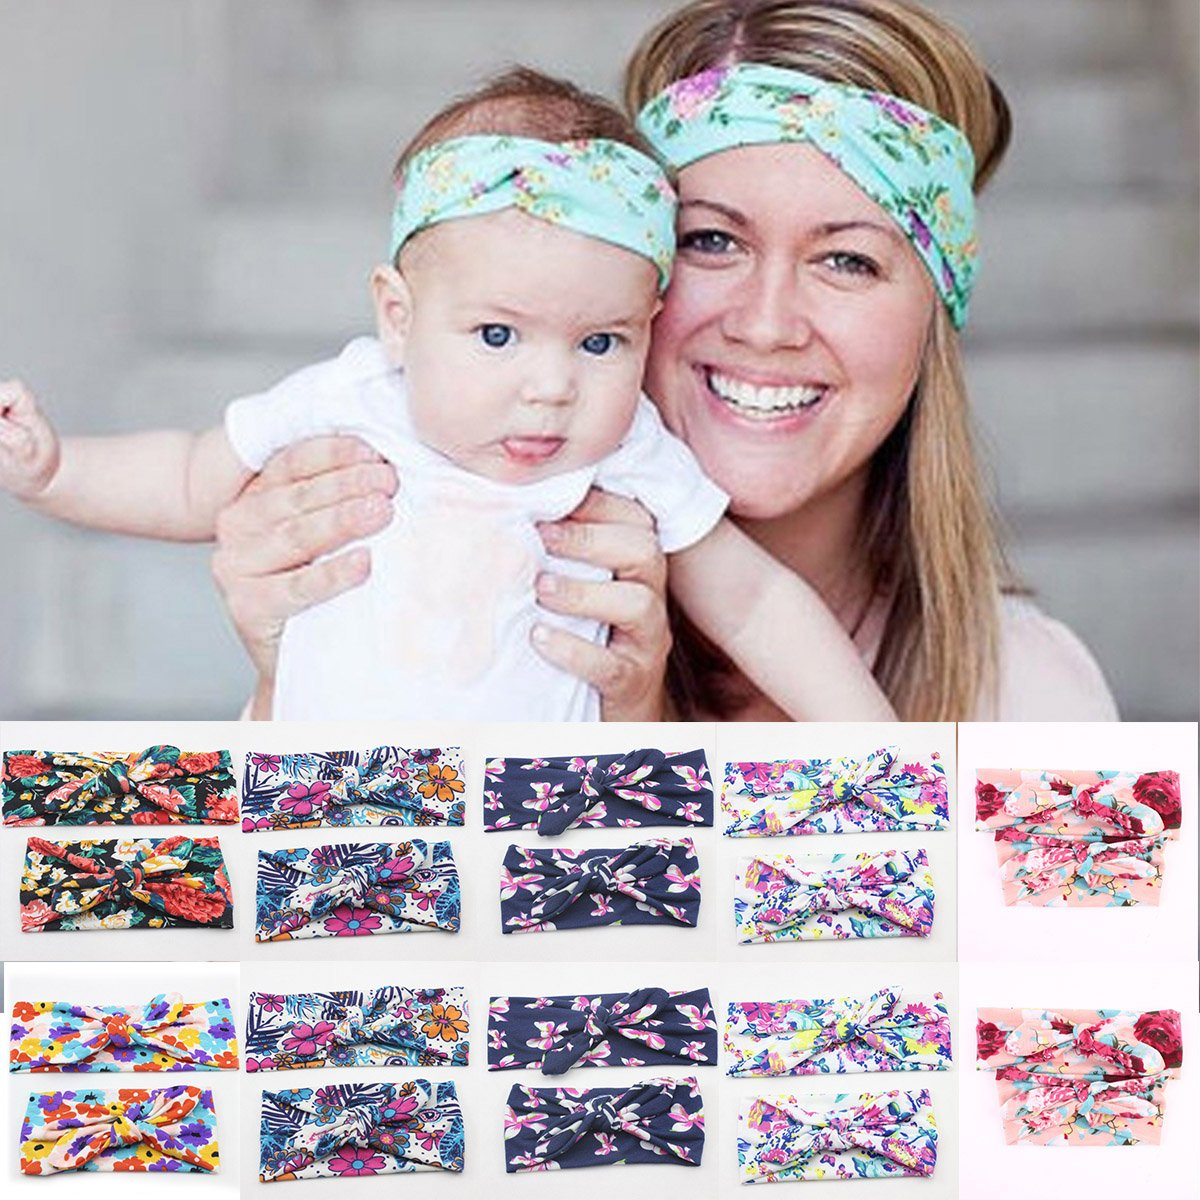 Puseky Baby Girl Toddlers Kids Cute Stretchy Turban Bright Colors Fruit Pattern Headband